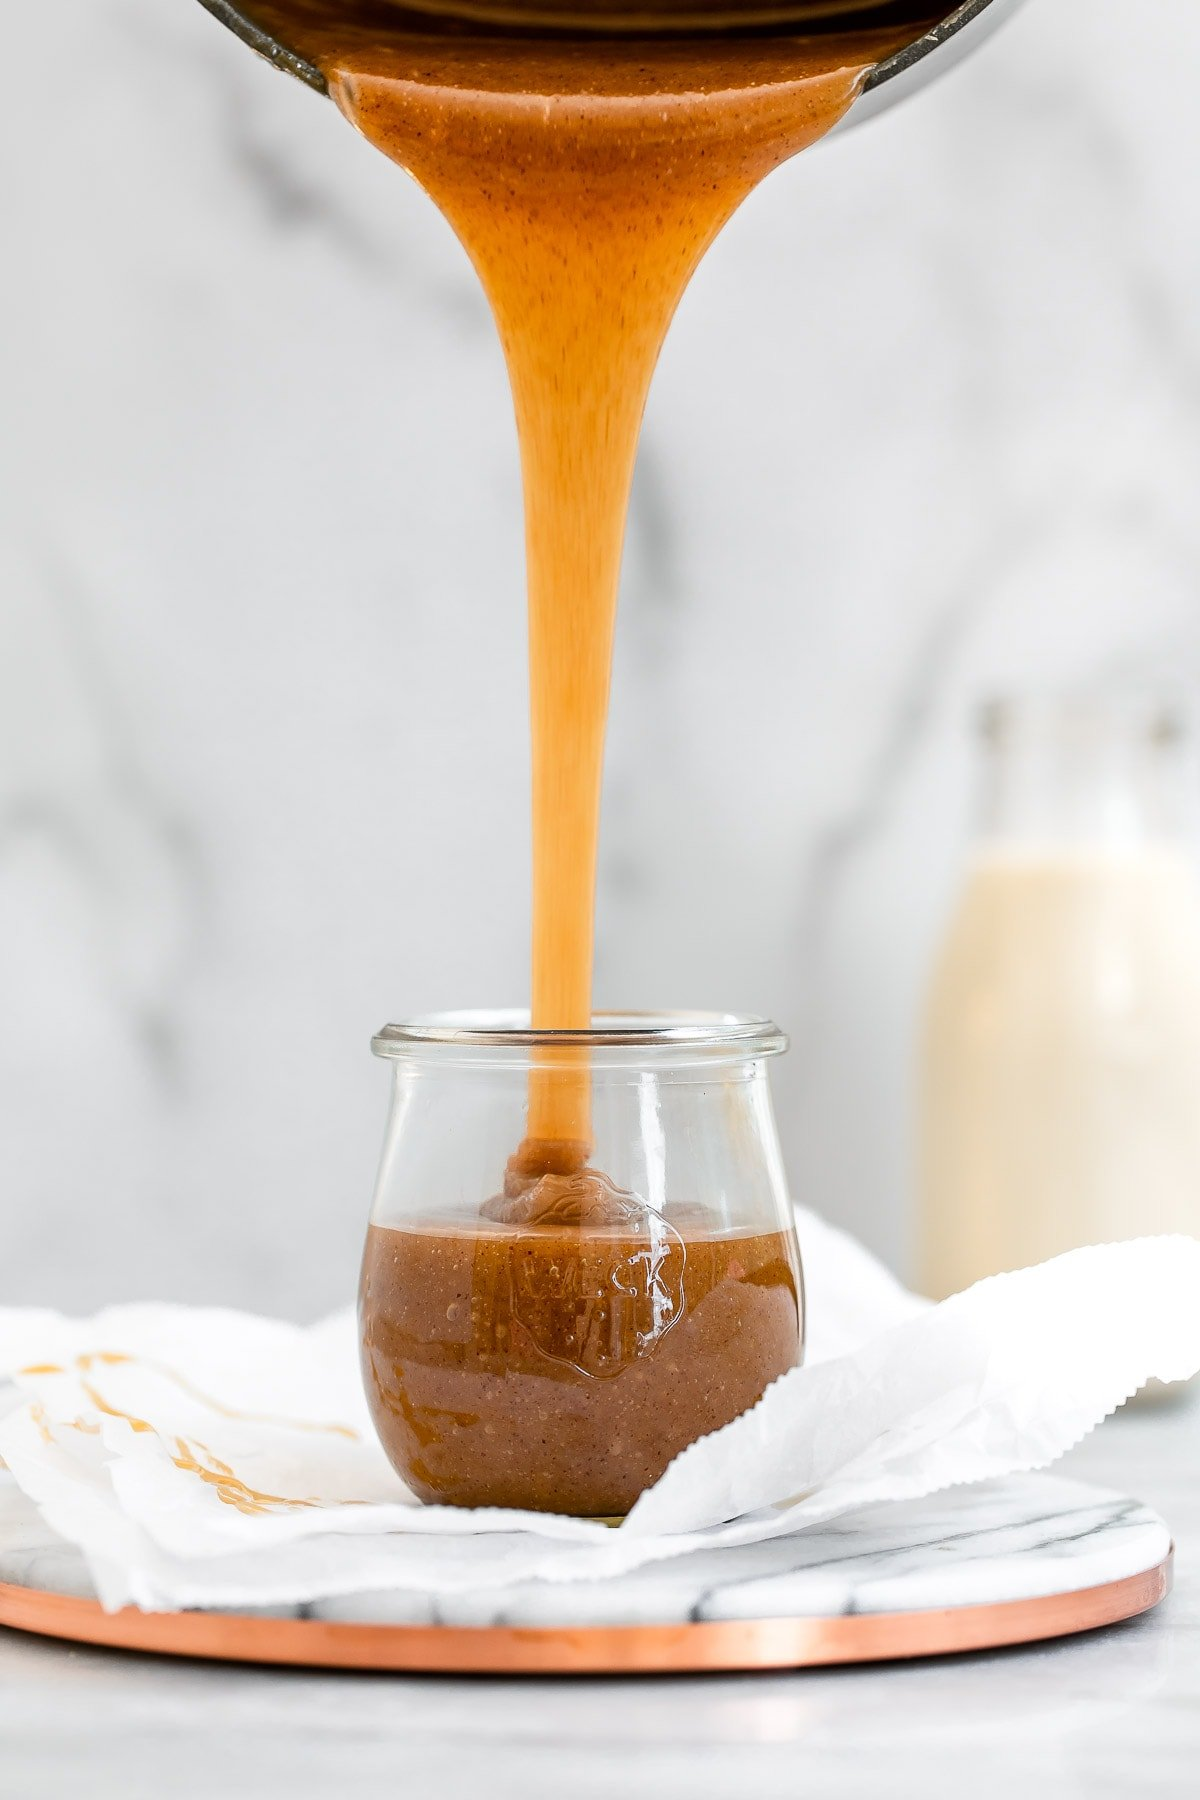 Pouring the caramel into a glass jar from a black pot.